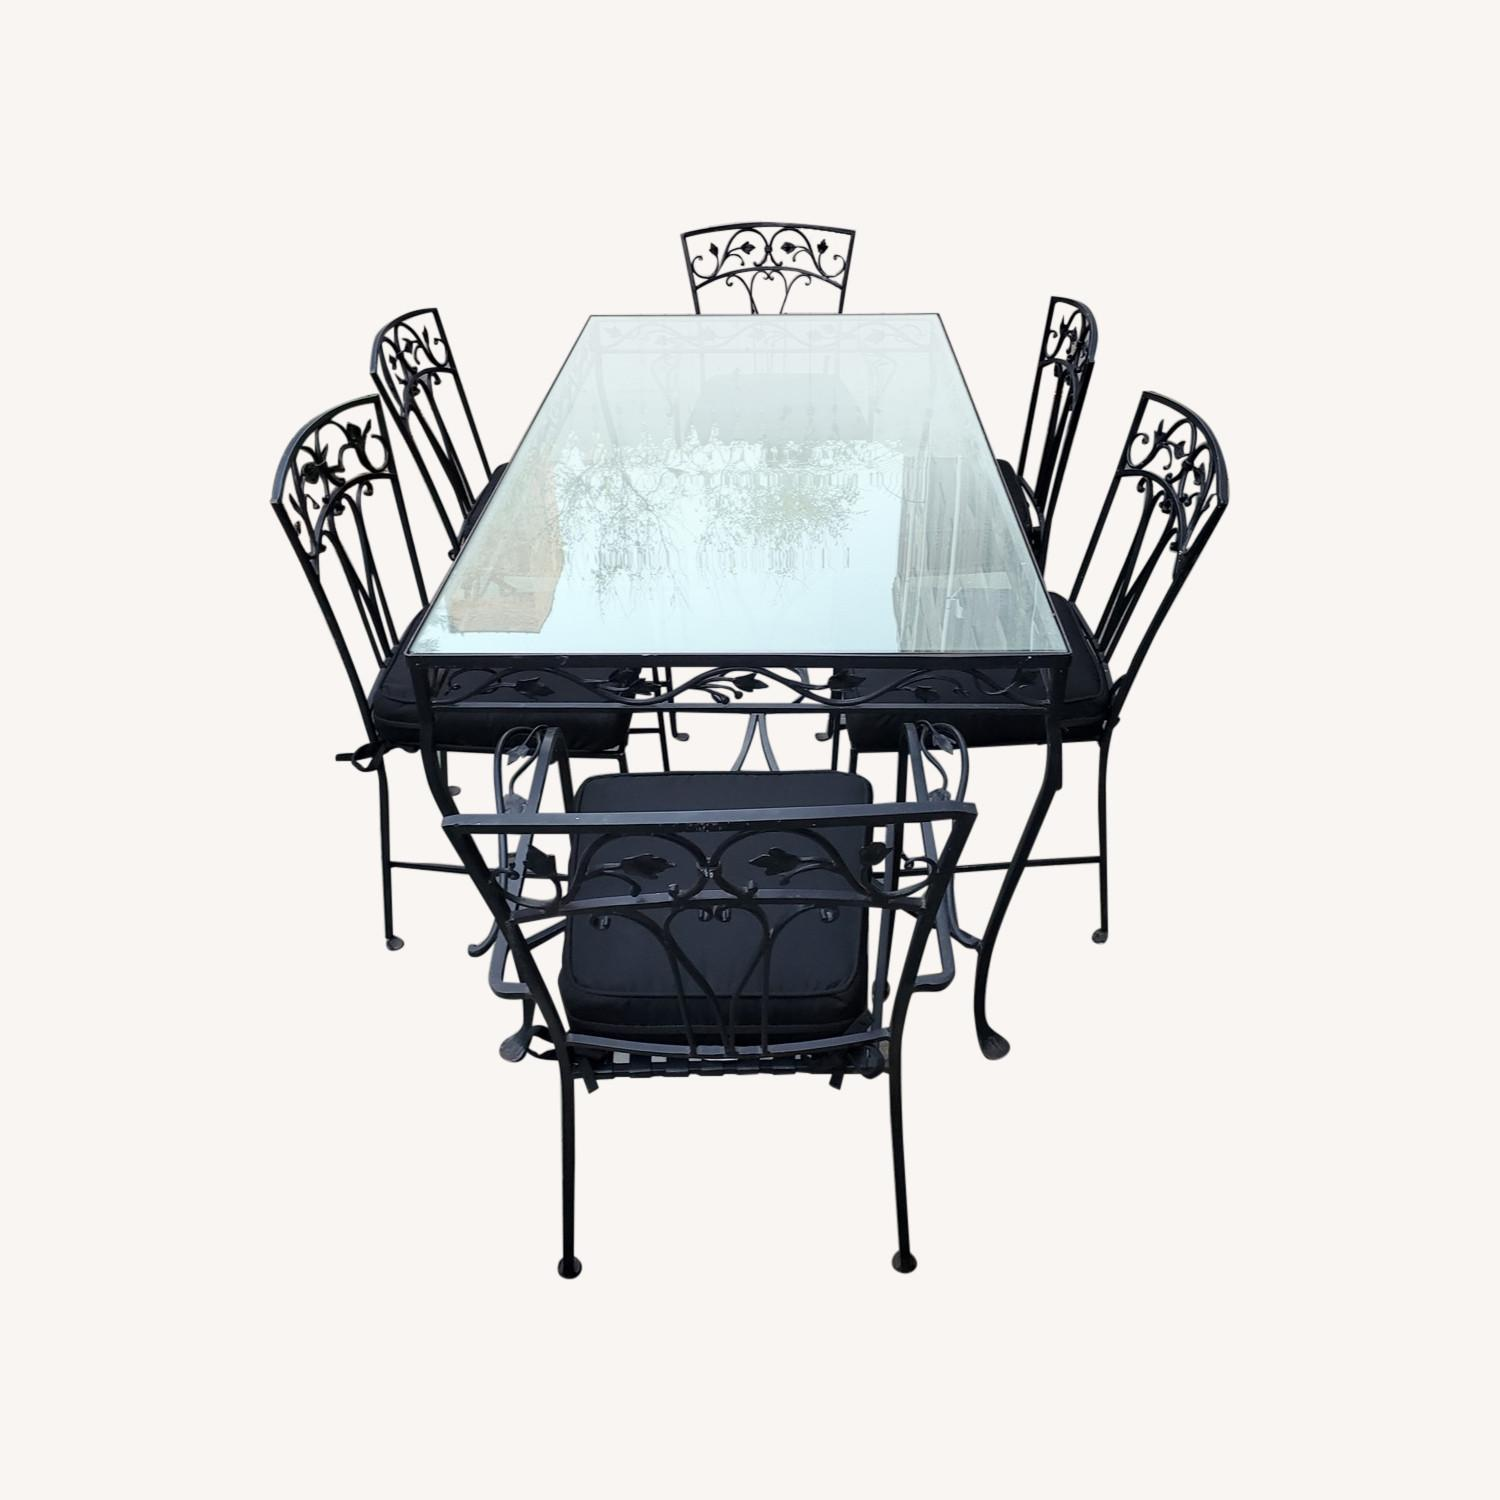 1940's VINTAGE OUTDOOR WROUGHT IRON TABLE/CHAIRS - image-0